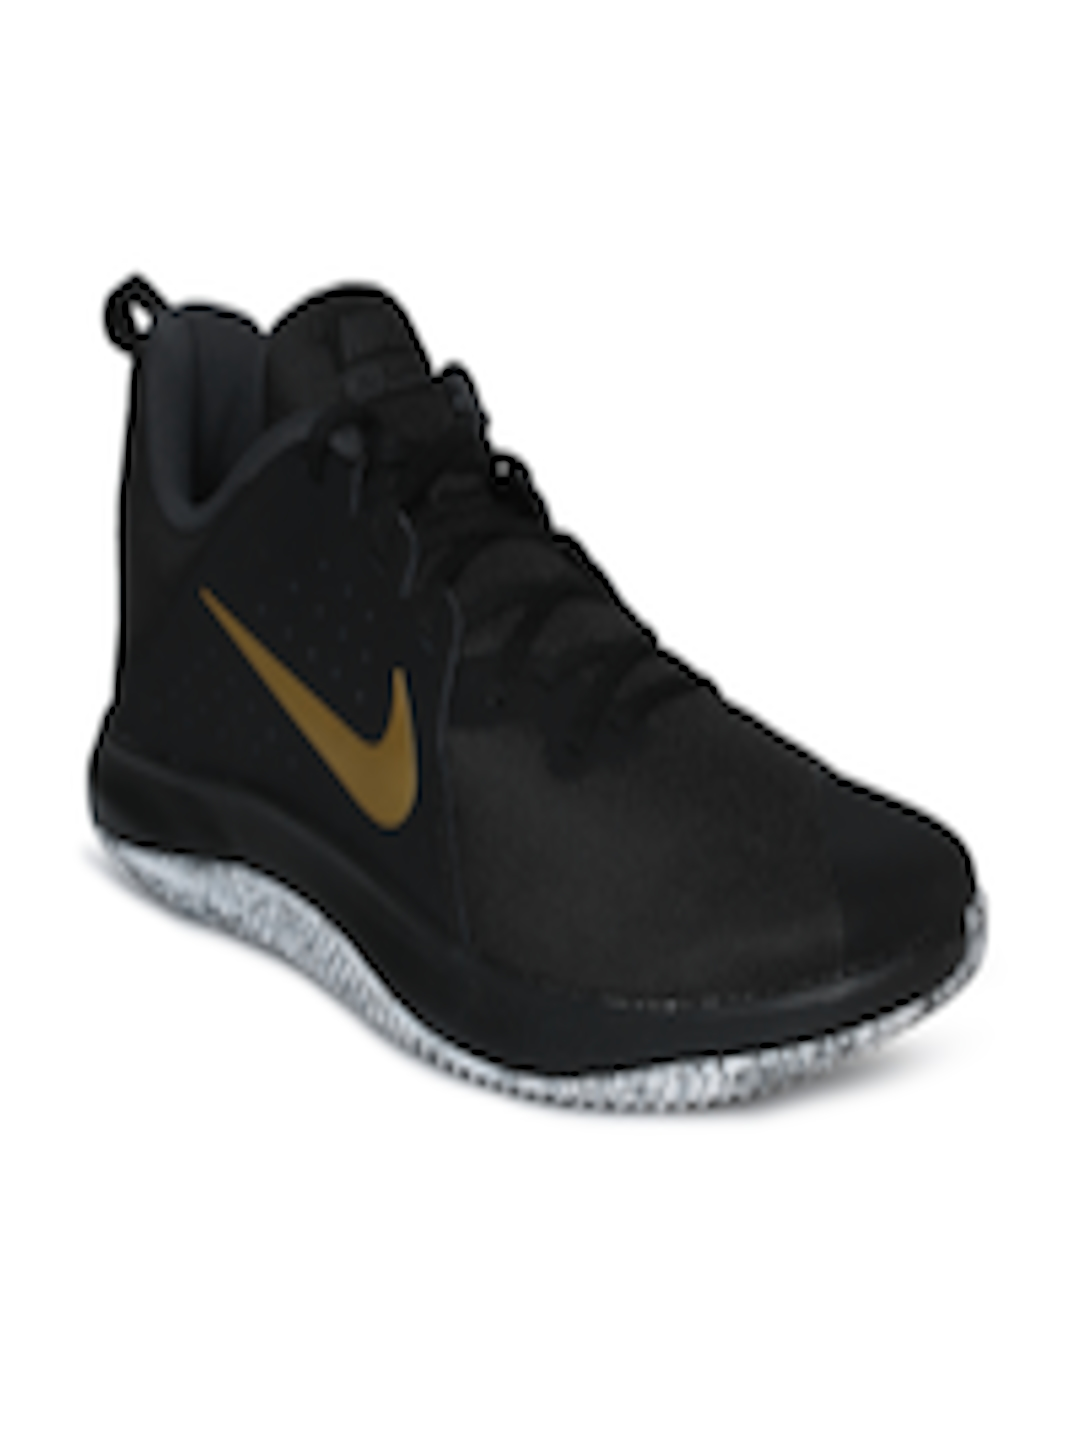 100% authentic 8a5e1 698ea Buy Nike Men Black FLY BY LOW Basketball Shoes - Sports Shoes for Men  4330912   Myntra